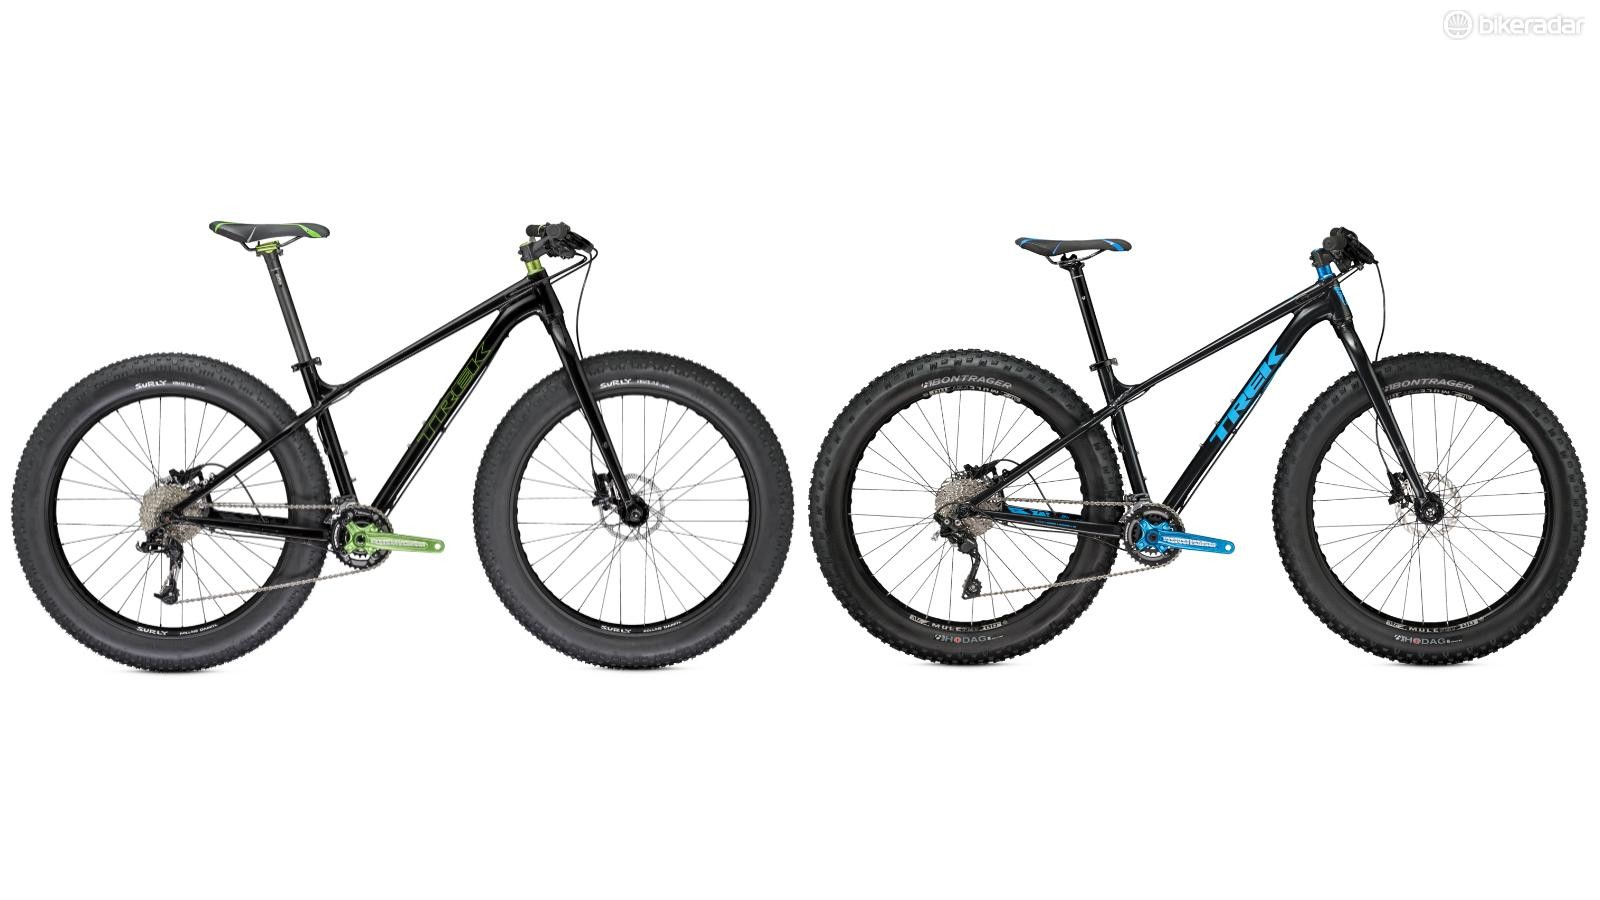 Trek is recalling more than 4,000 model year 2014 and 2015 Farley 6 fat bikes